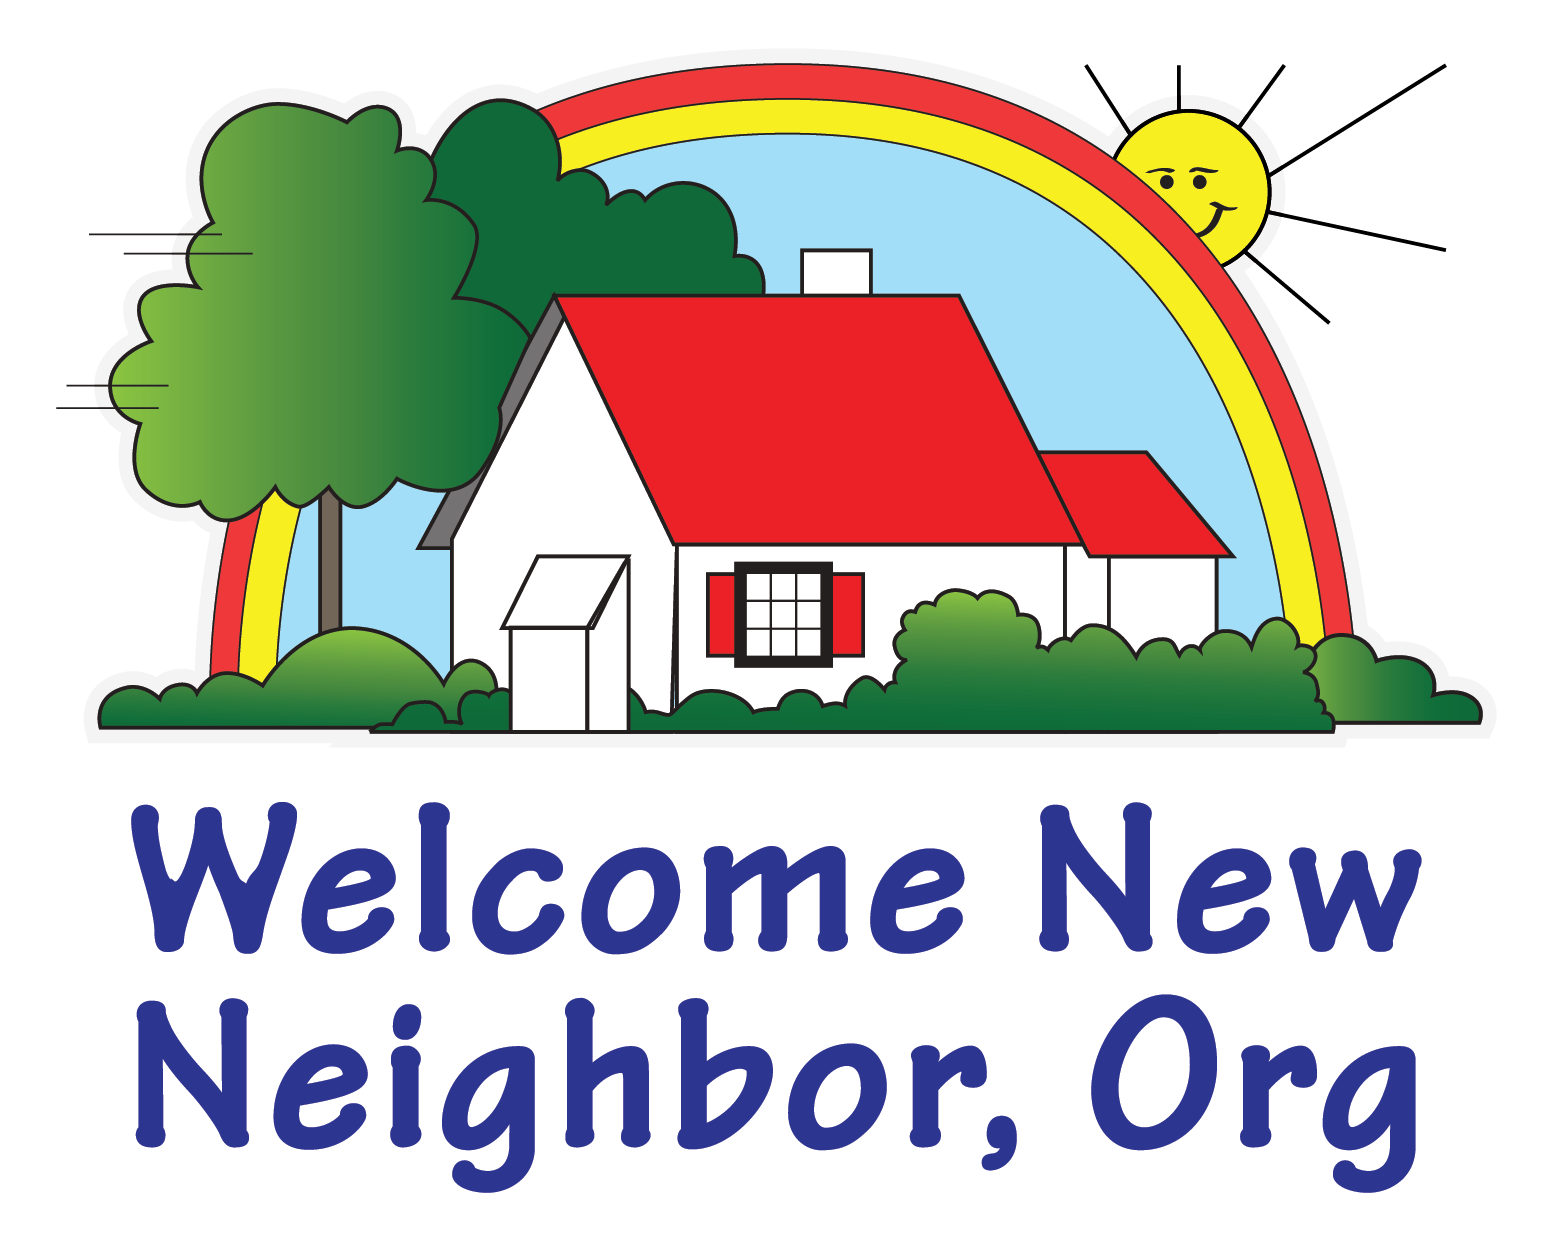 Neighbors clipart new home. Welcome neighbor org we